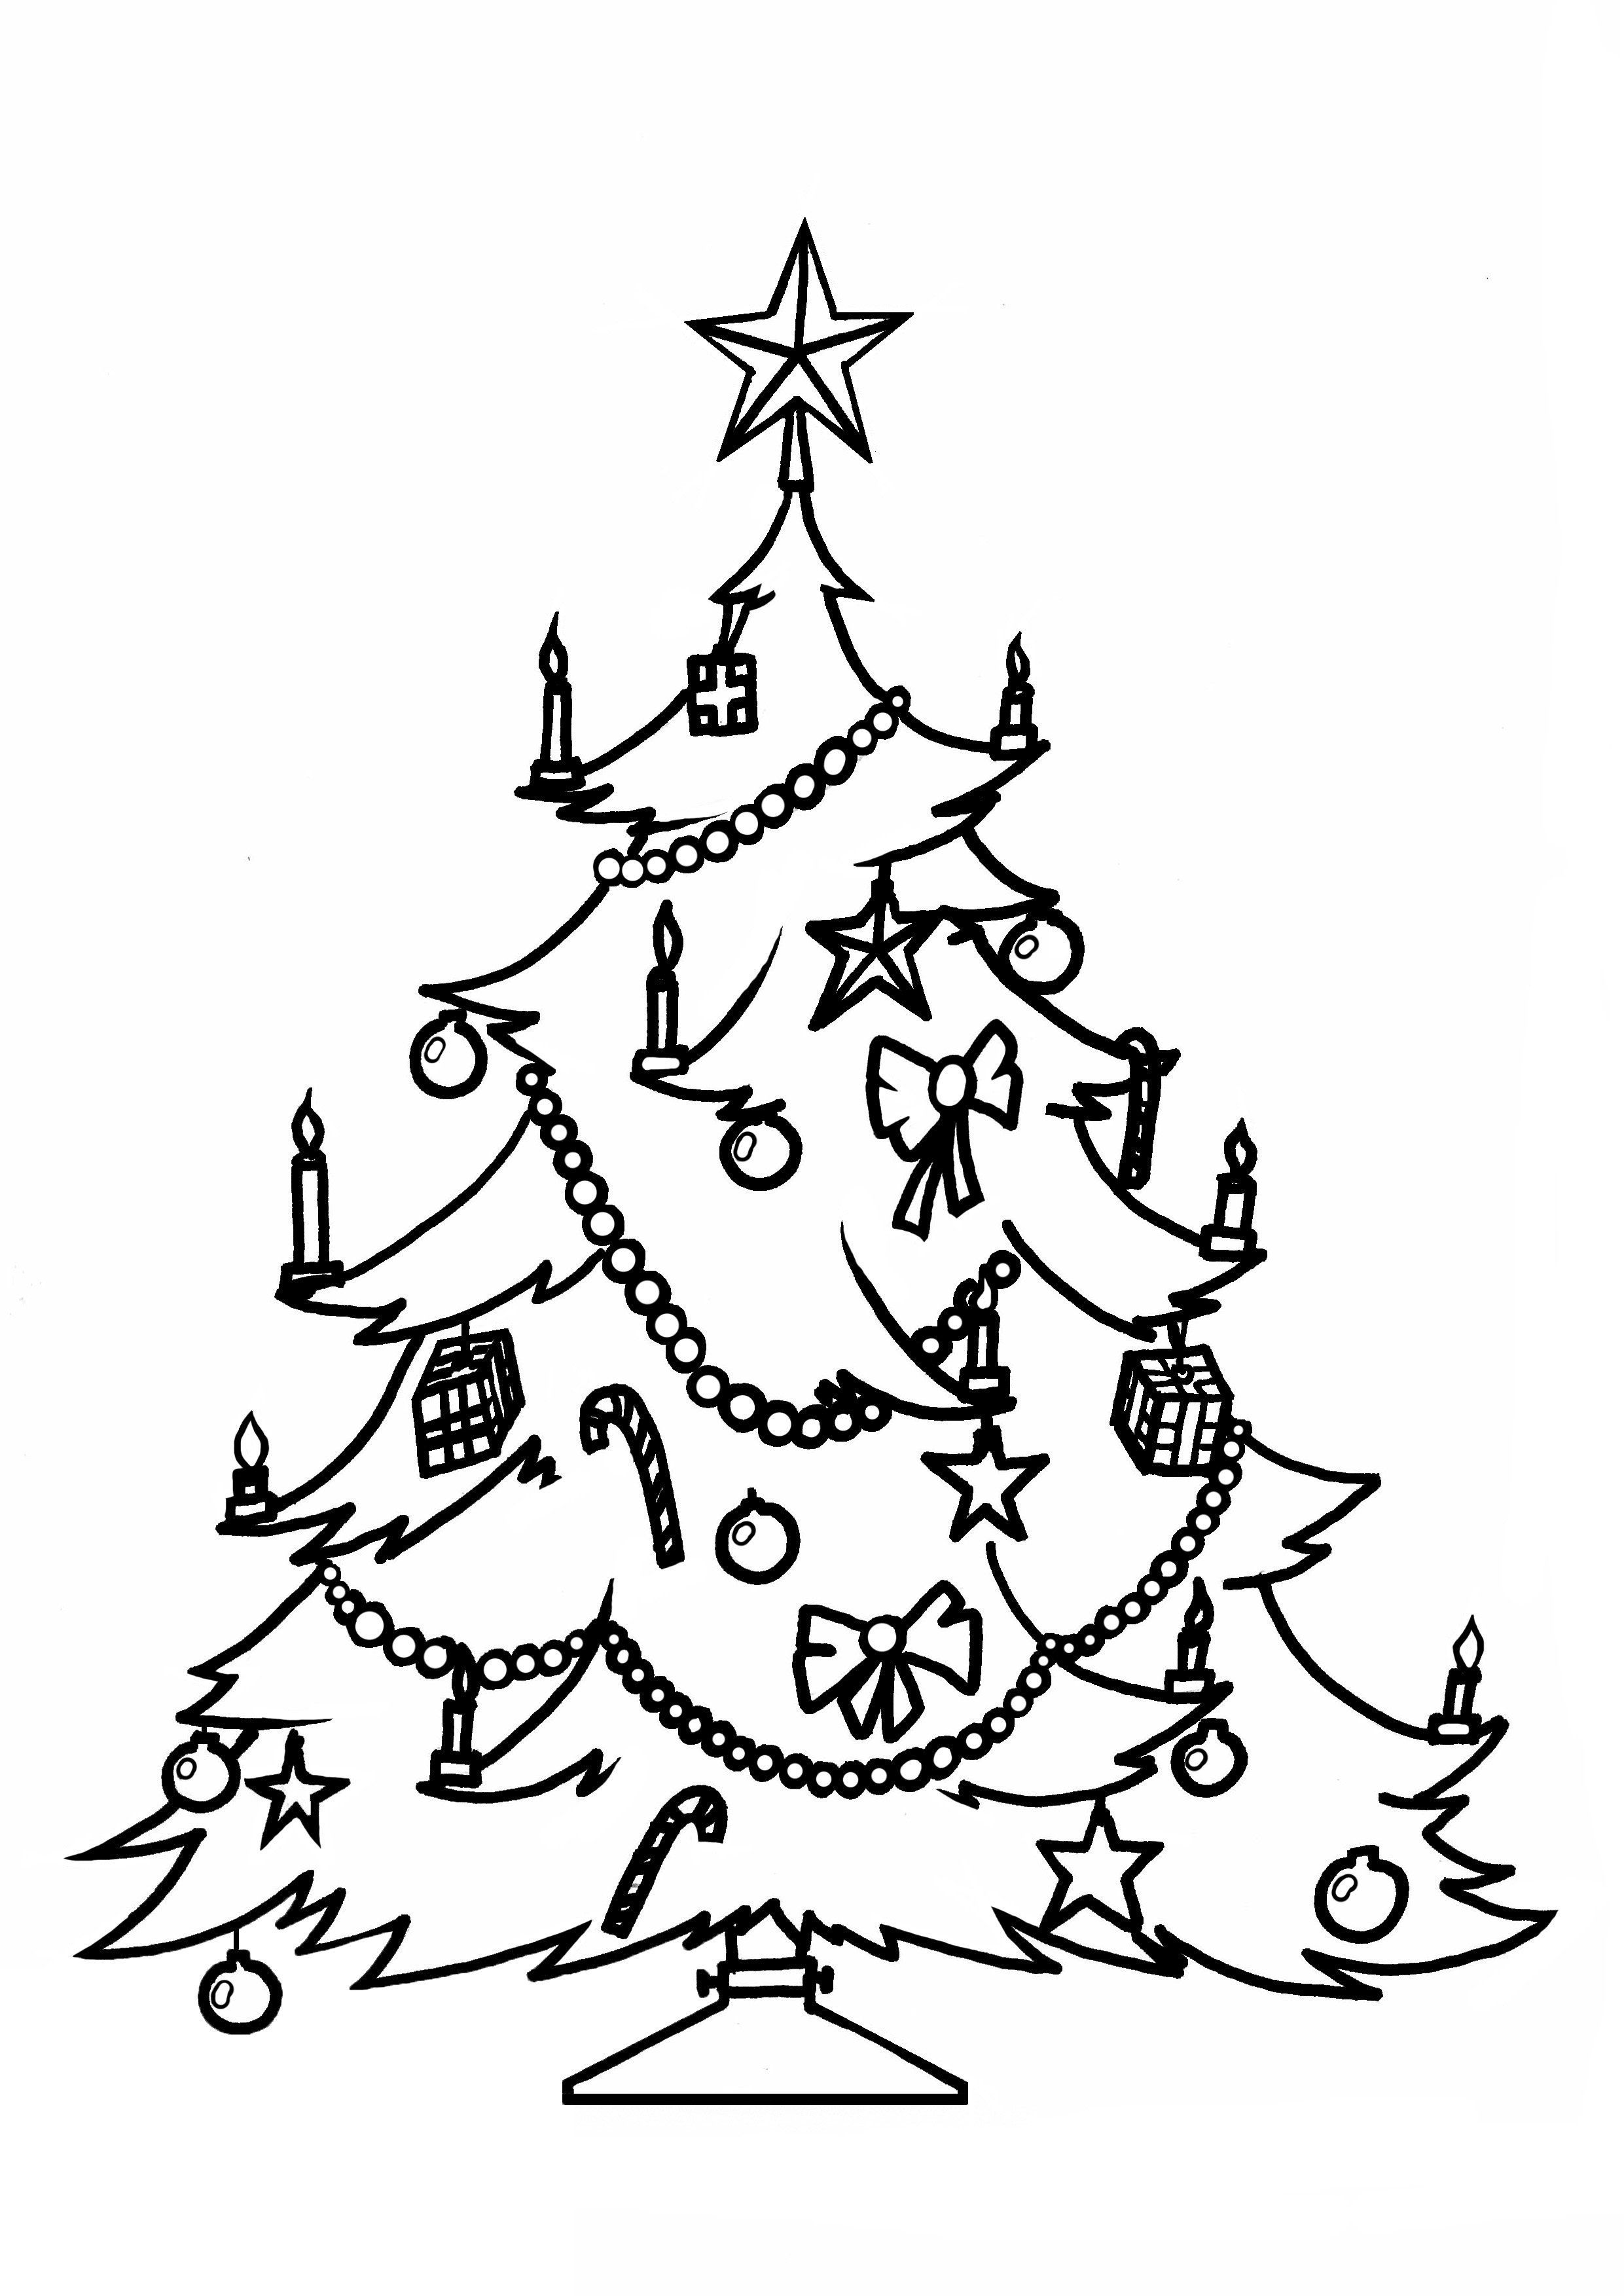 Free Printable Fall Coloring Pages For Use In Your Classroom Or Home From Primar Coloringpanto Malvorlagen Fur Kinder Kostenlose Ausmalbilder Malvorlagen